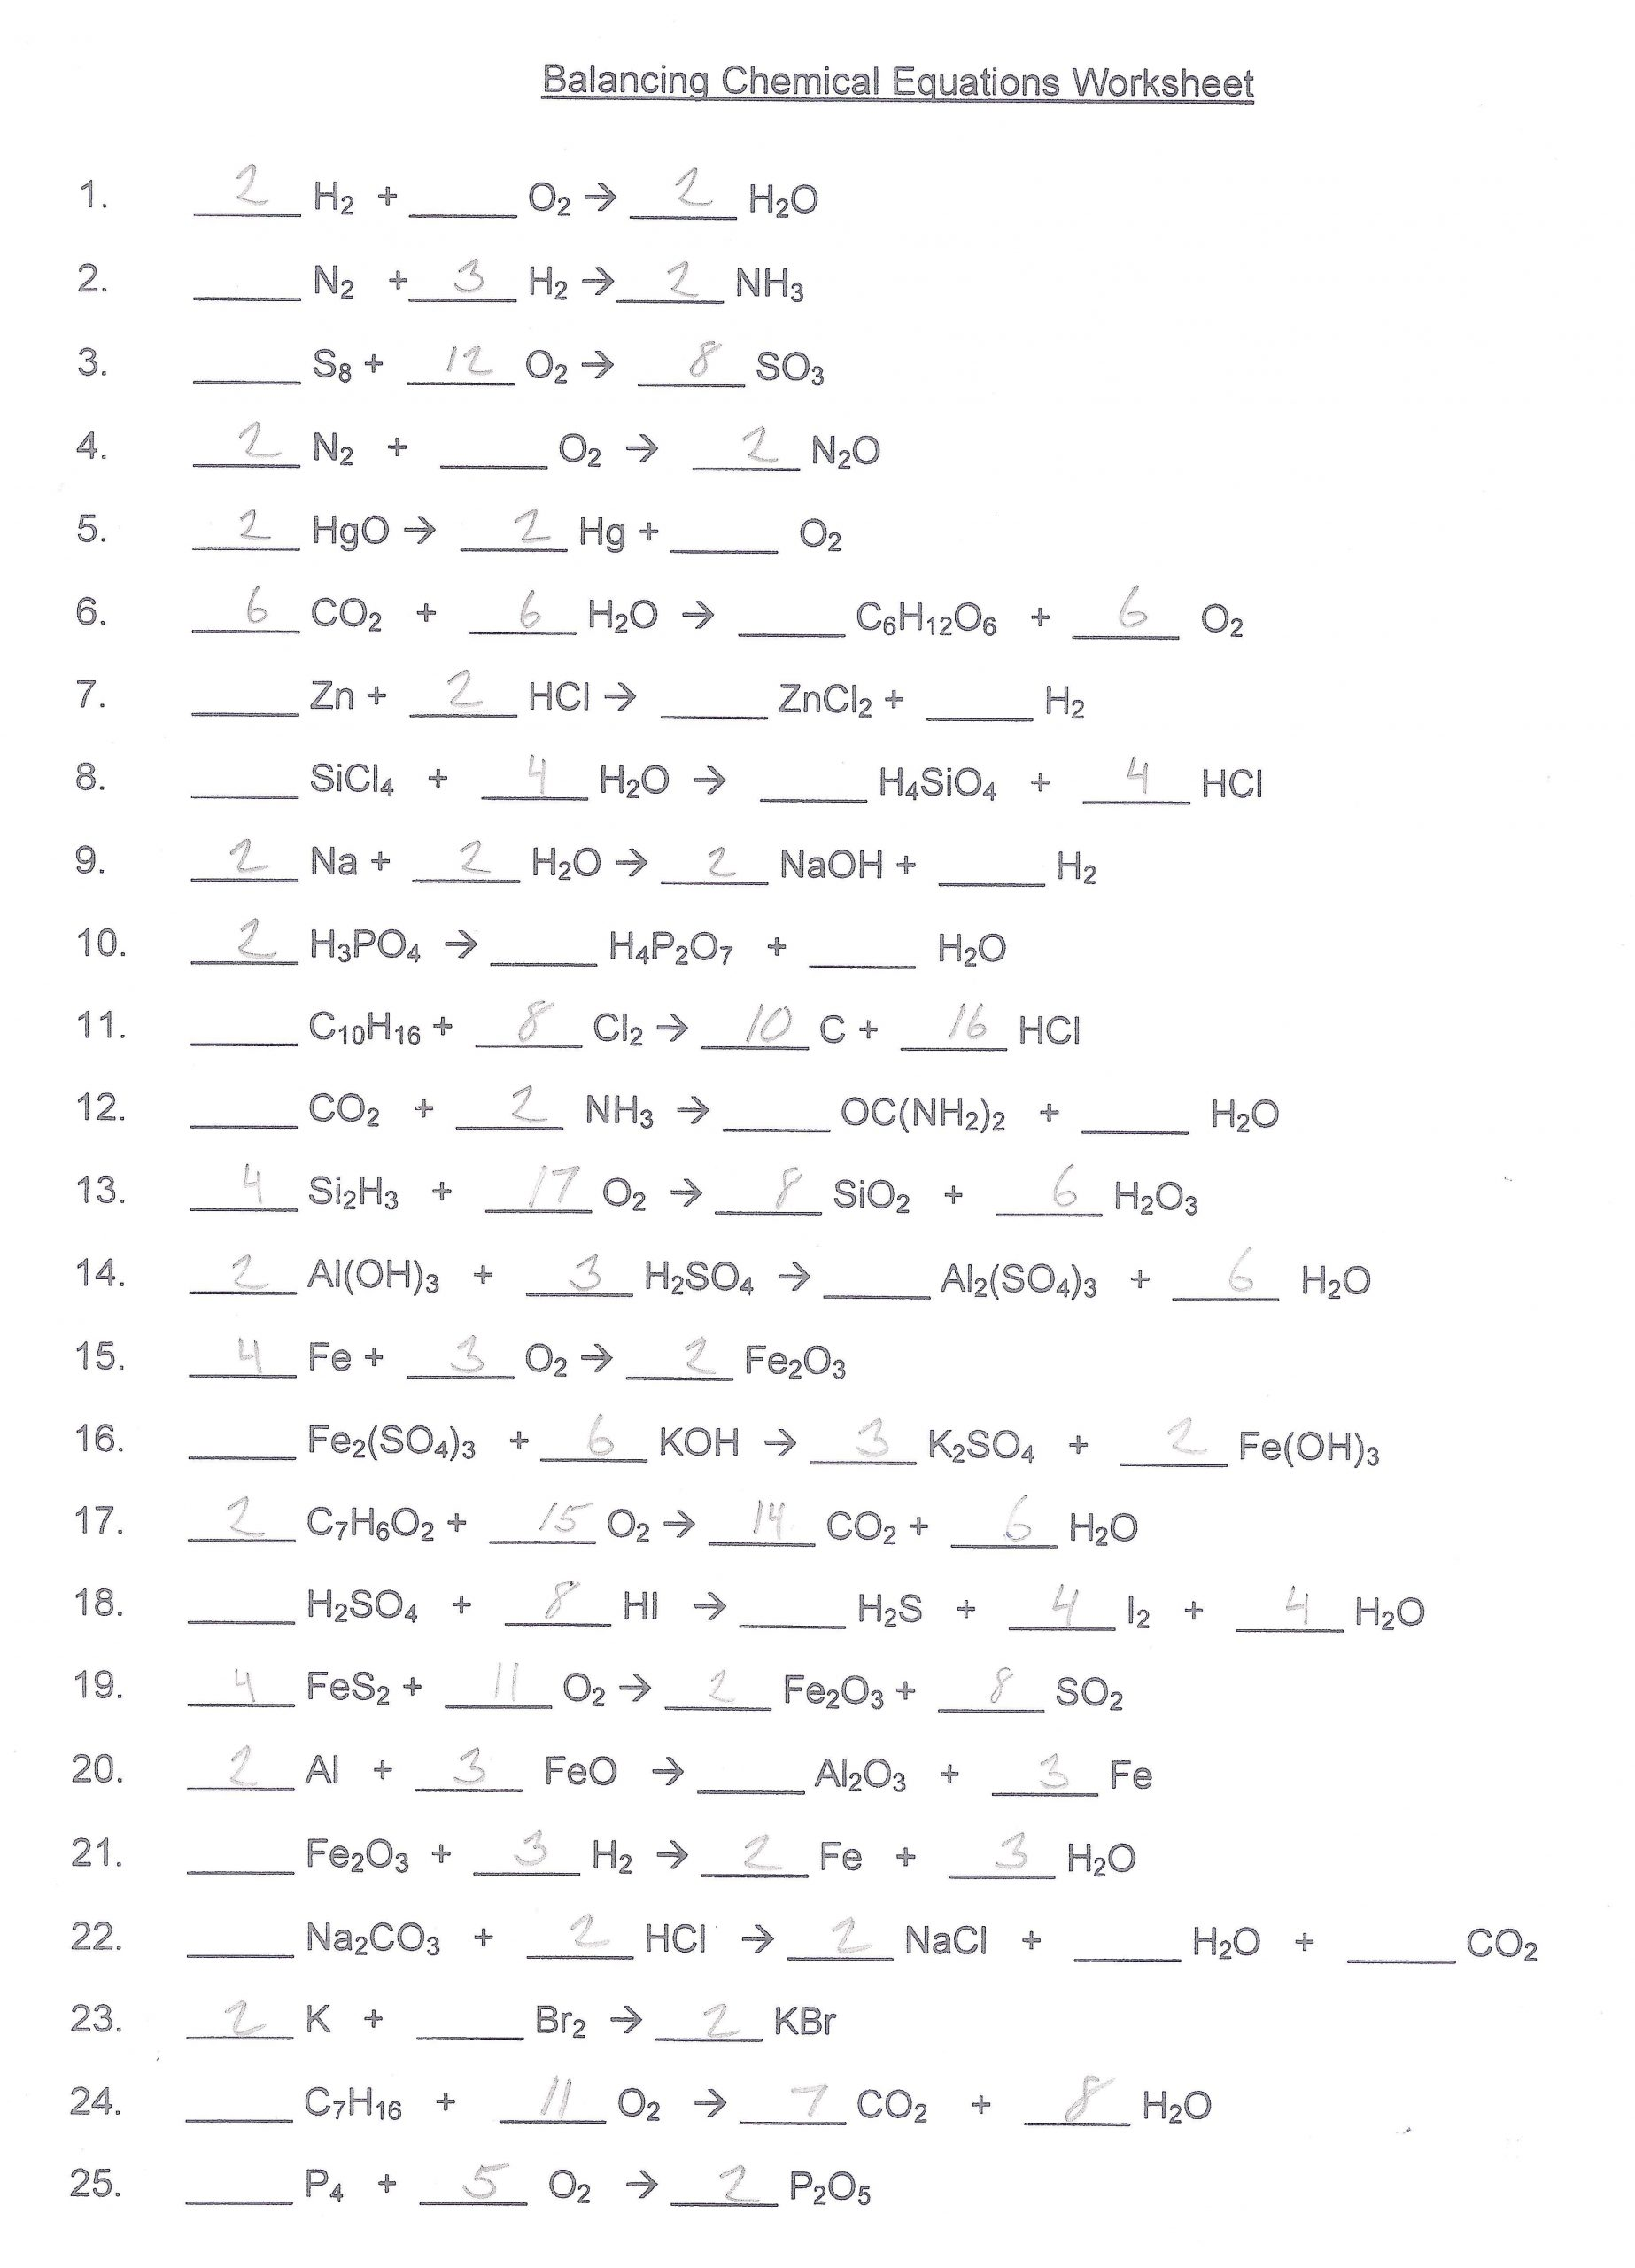 Writing Chemical Equations Worksheet Balancing Chemical Equations Worksheet